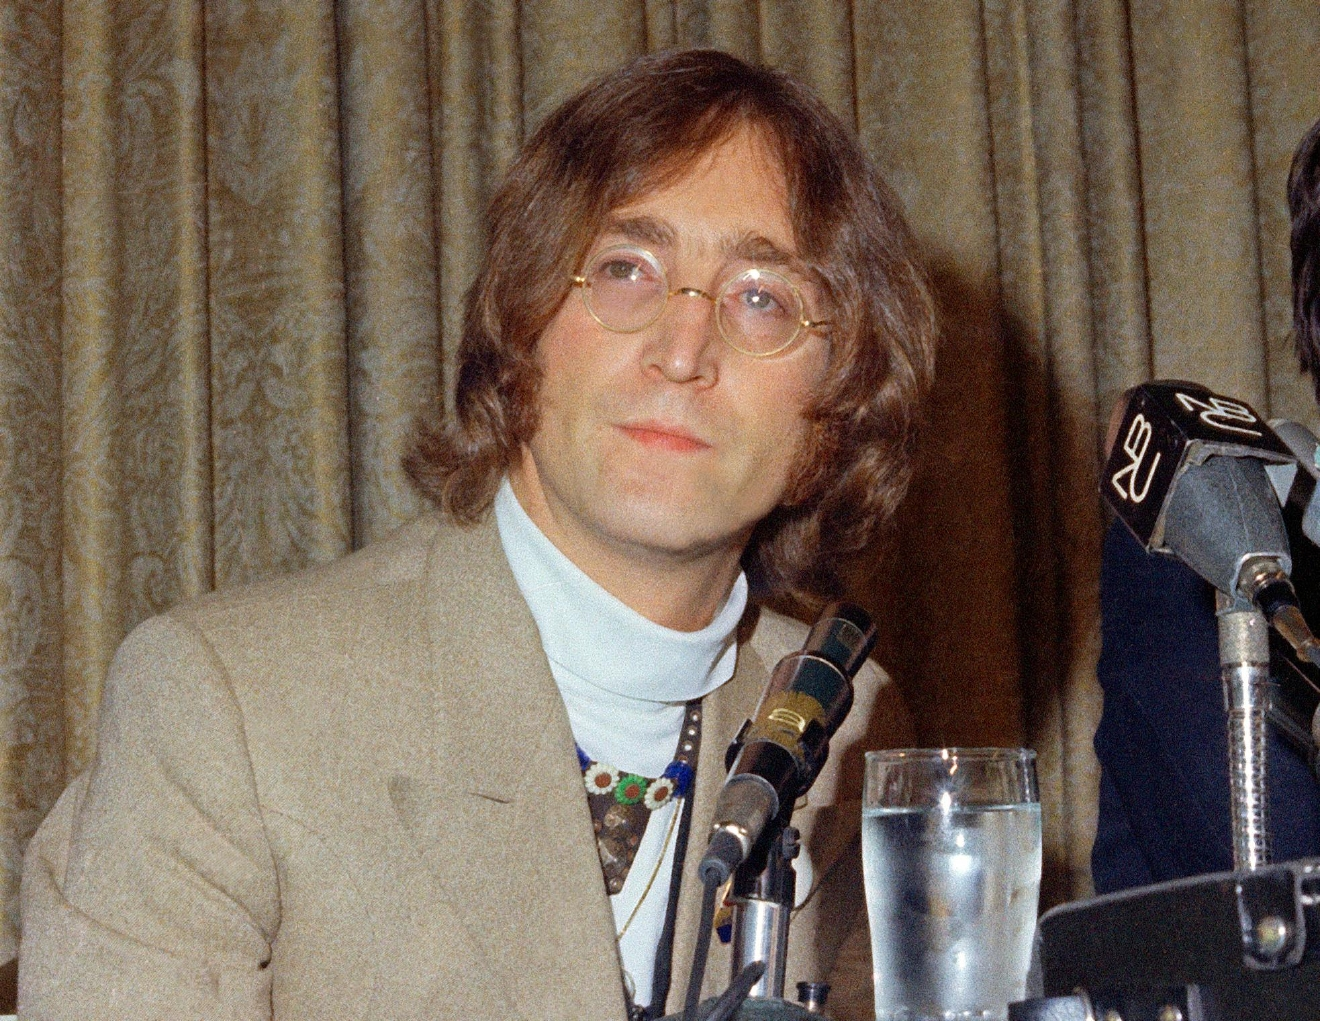 FILE - In this 1971 file photo, singer John Lennon appears during a press conference. (AP Photo, File)